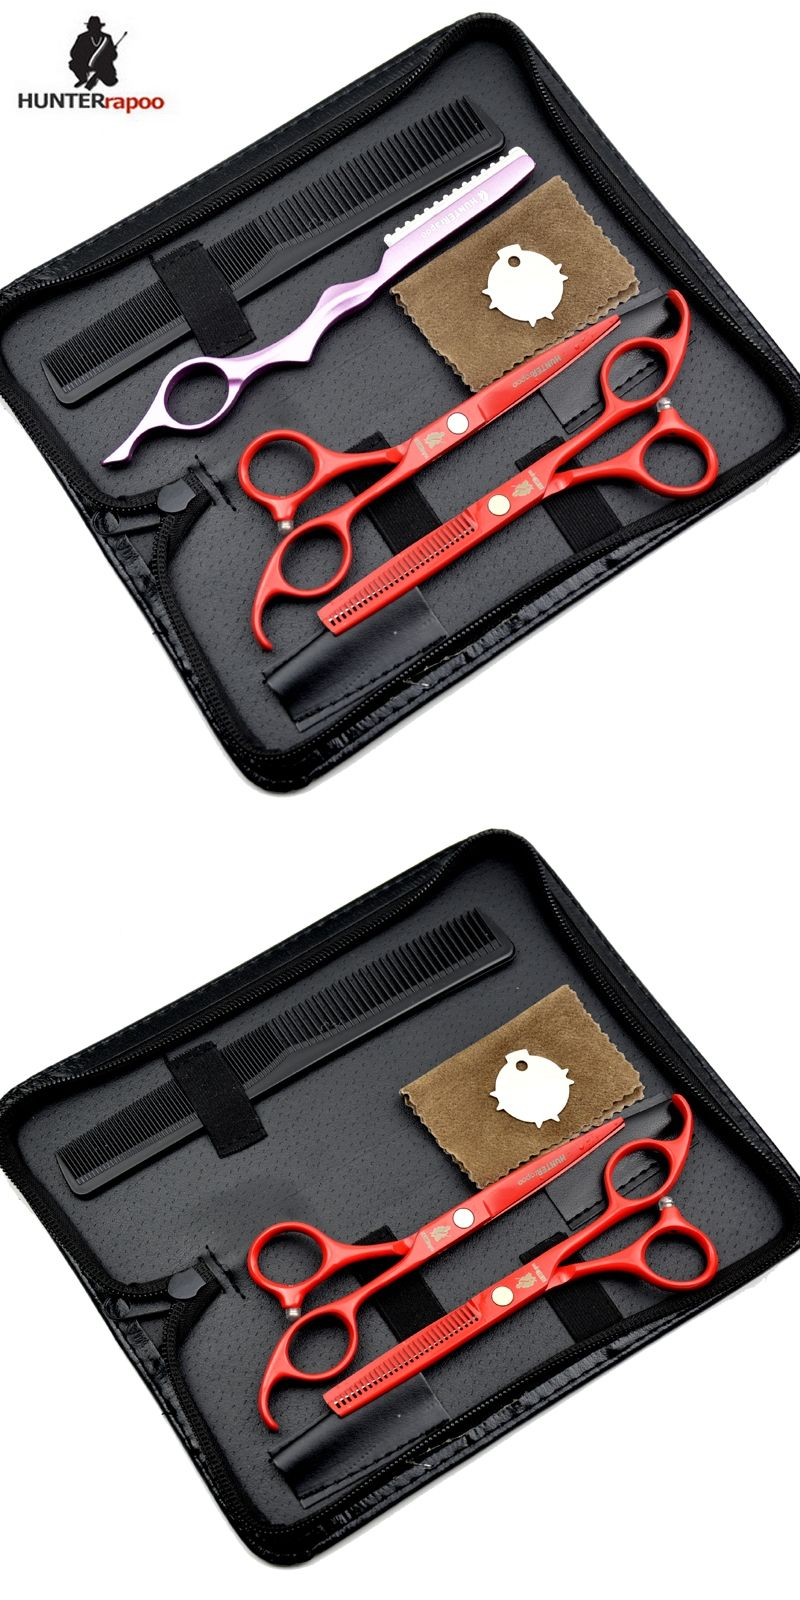 Hairdresser Supplies 5 Scissors Hair Professional Set Kit Barber For Cut Shears Ker